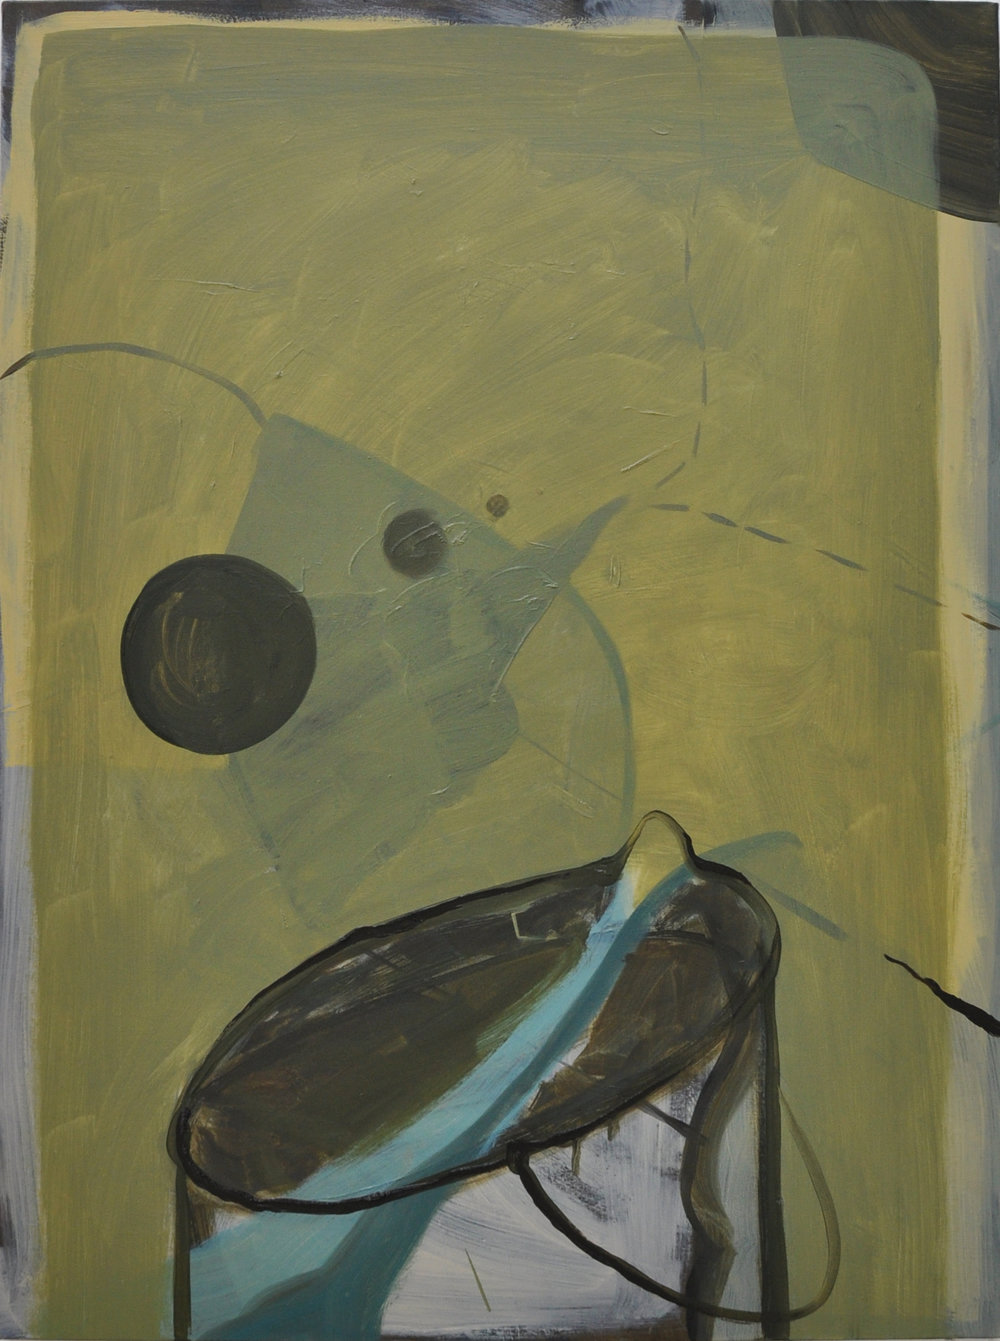 Quandary, 2011, Oil on cotton, 80 x 60 cm